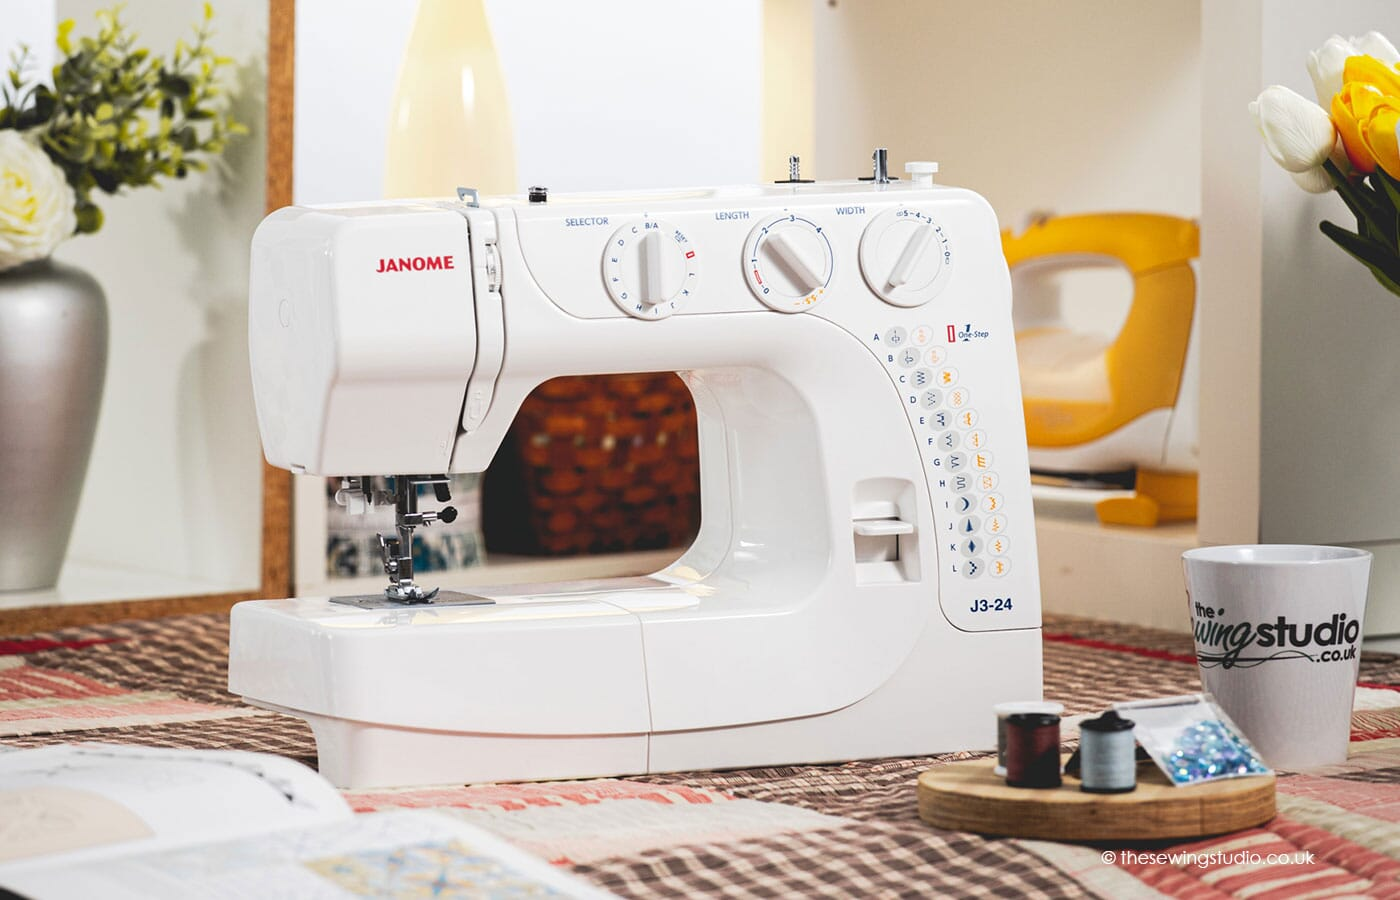 Janome J3-24 Sewing Machine in a Sewing Room